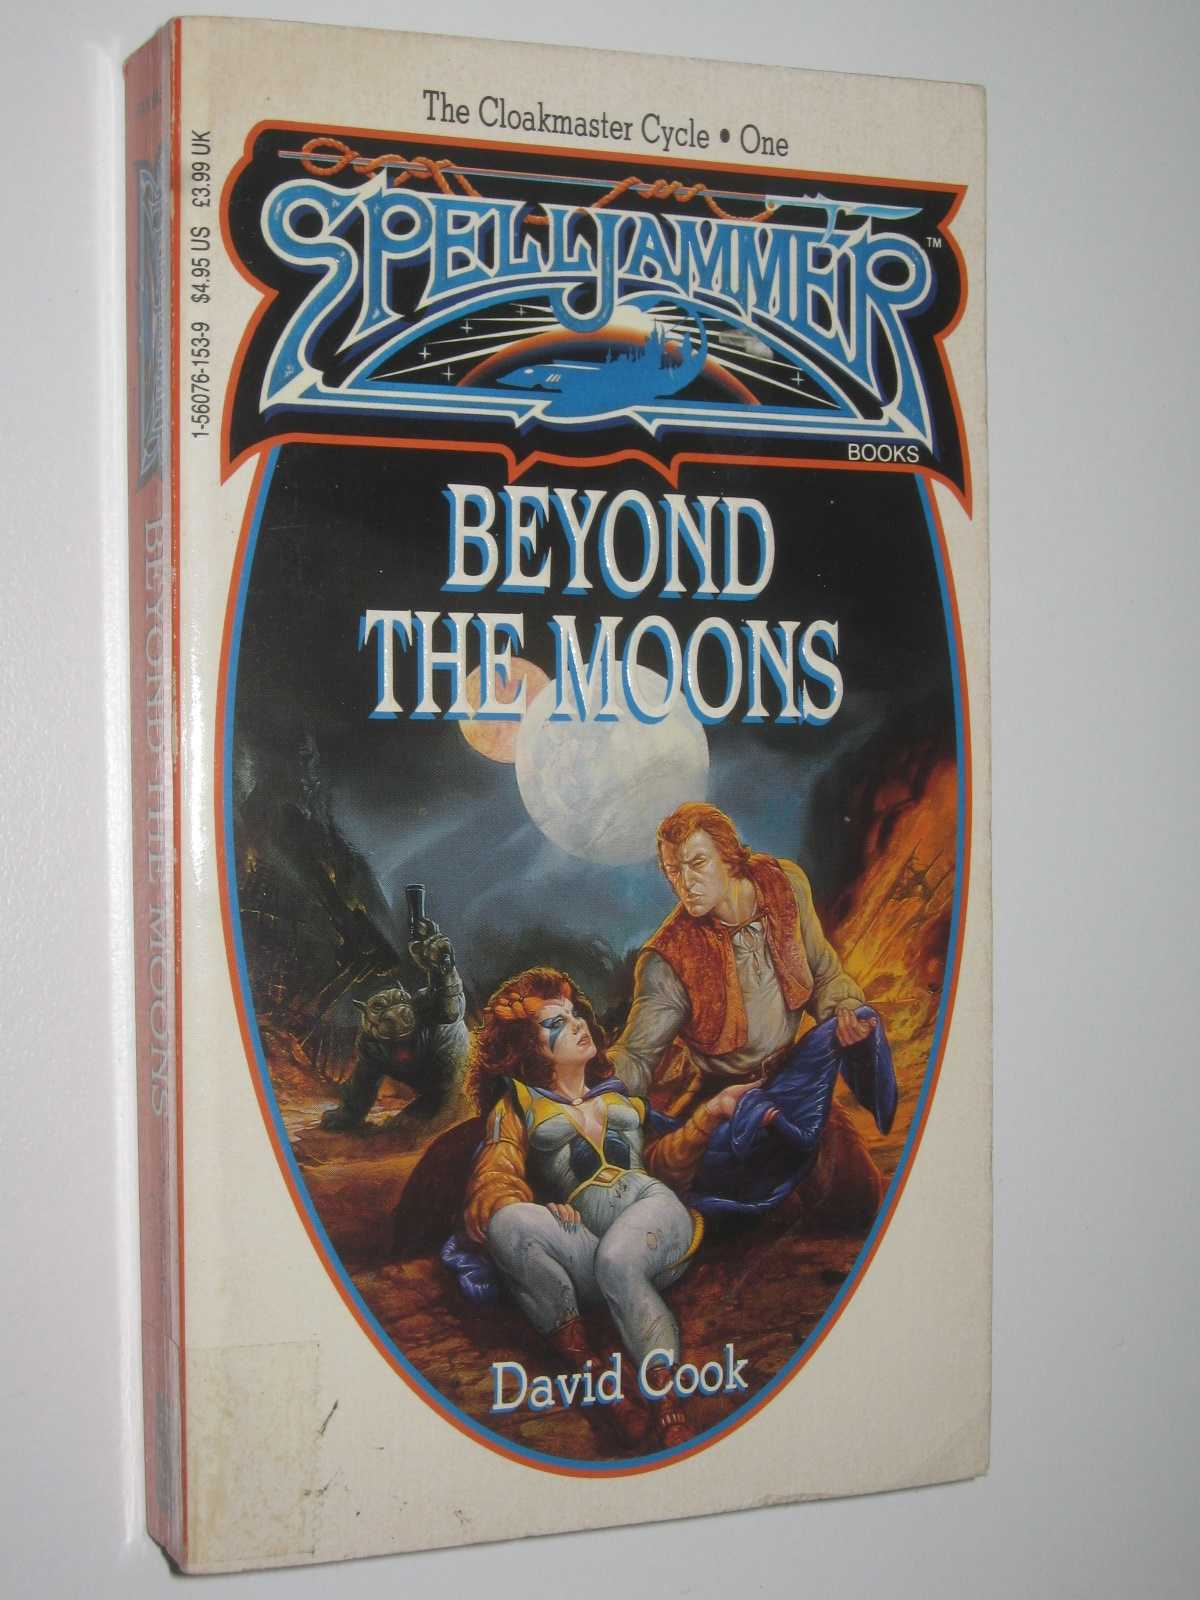 Image for Beyond the Moons - Spelljammer: Cloakmaster Cycle #1